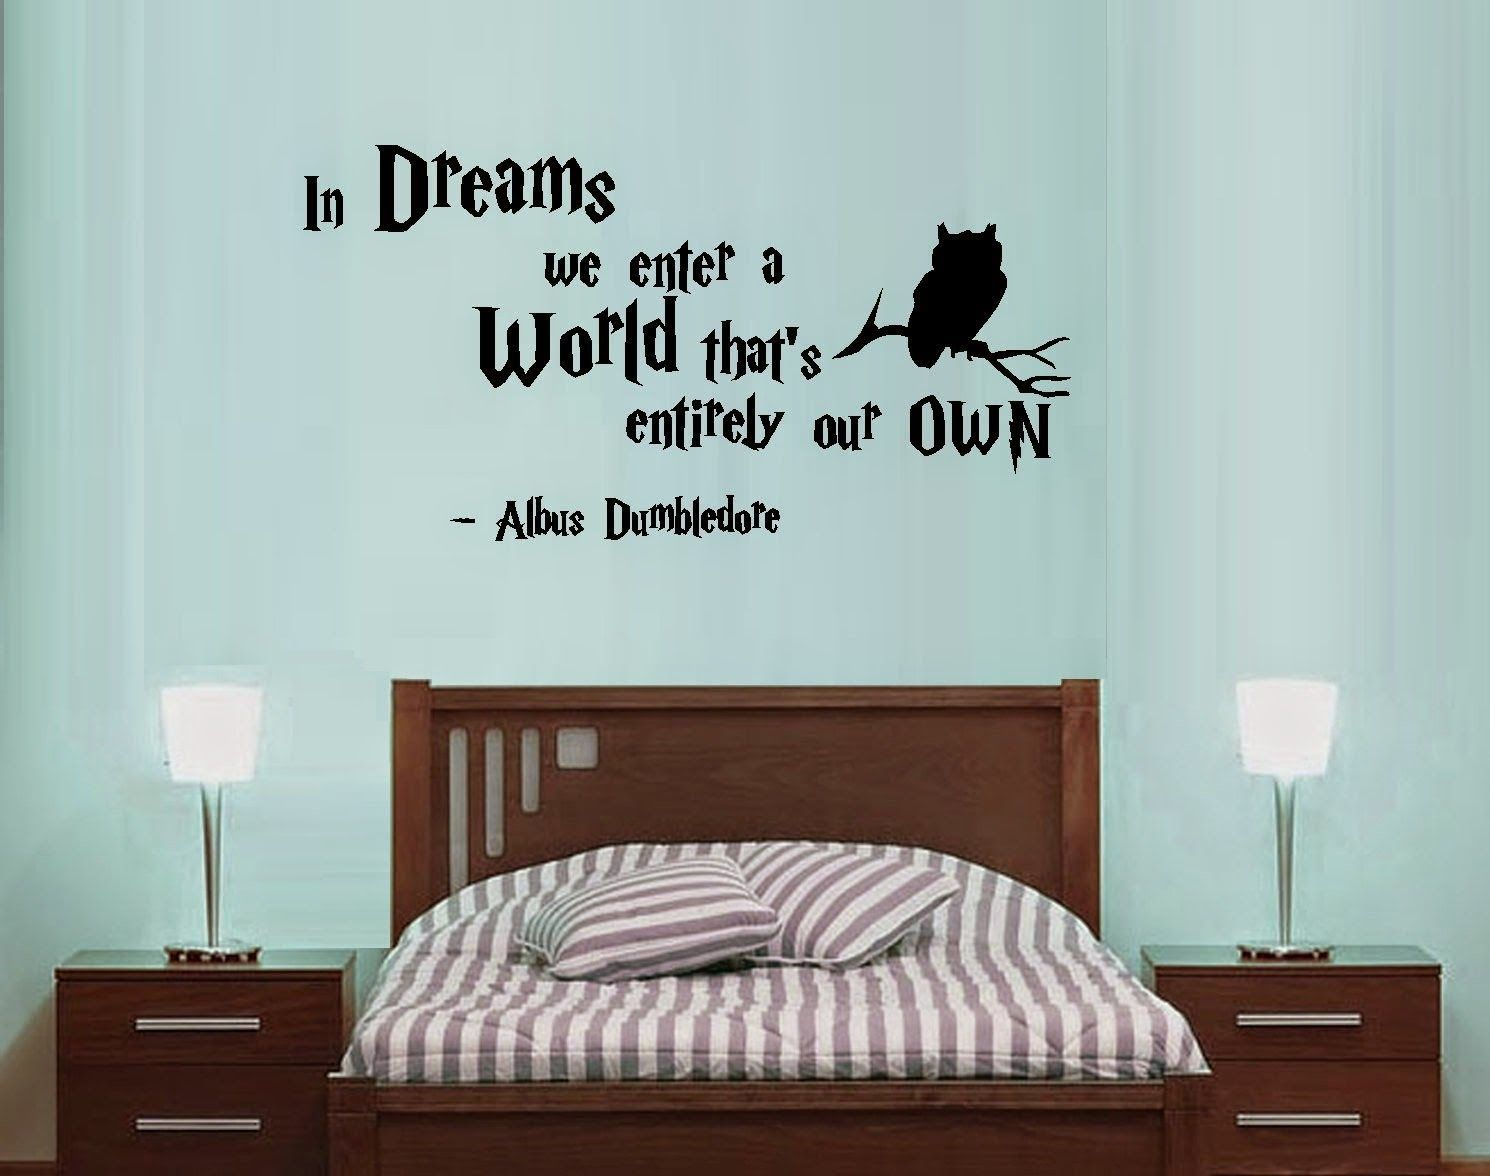 Letras para decorar un dormitorio inspiradas en Harry Potter : harry potter quote wall decals - www.pureclipart.com